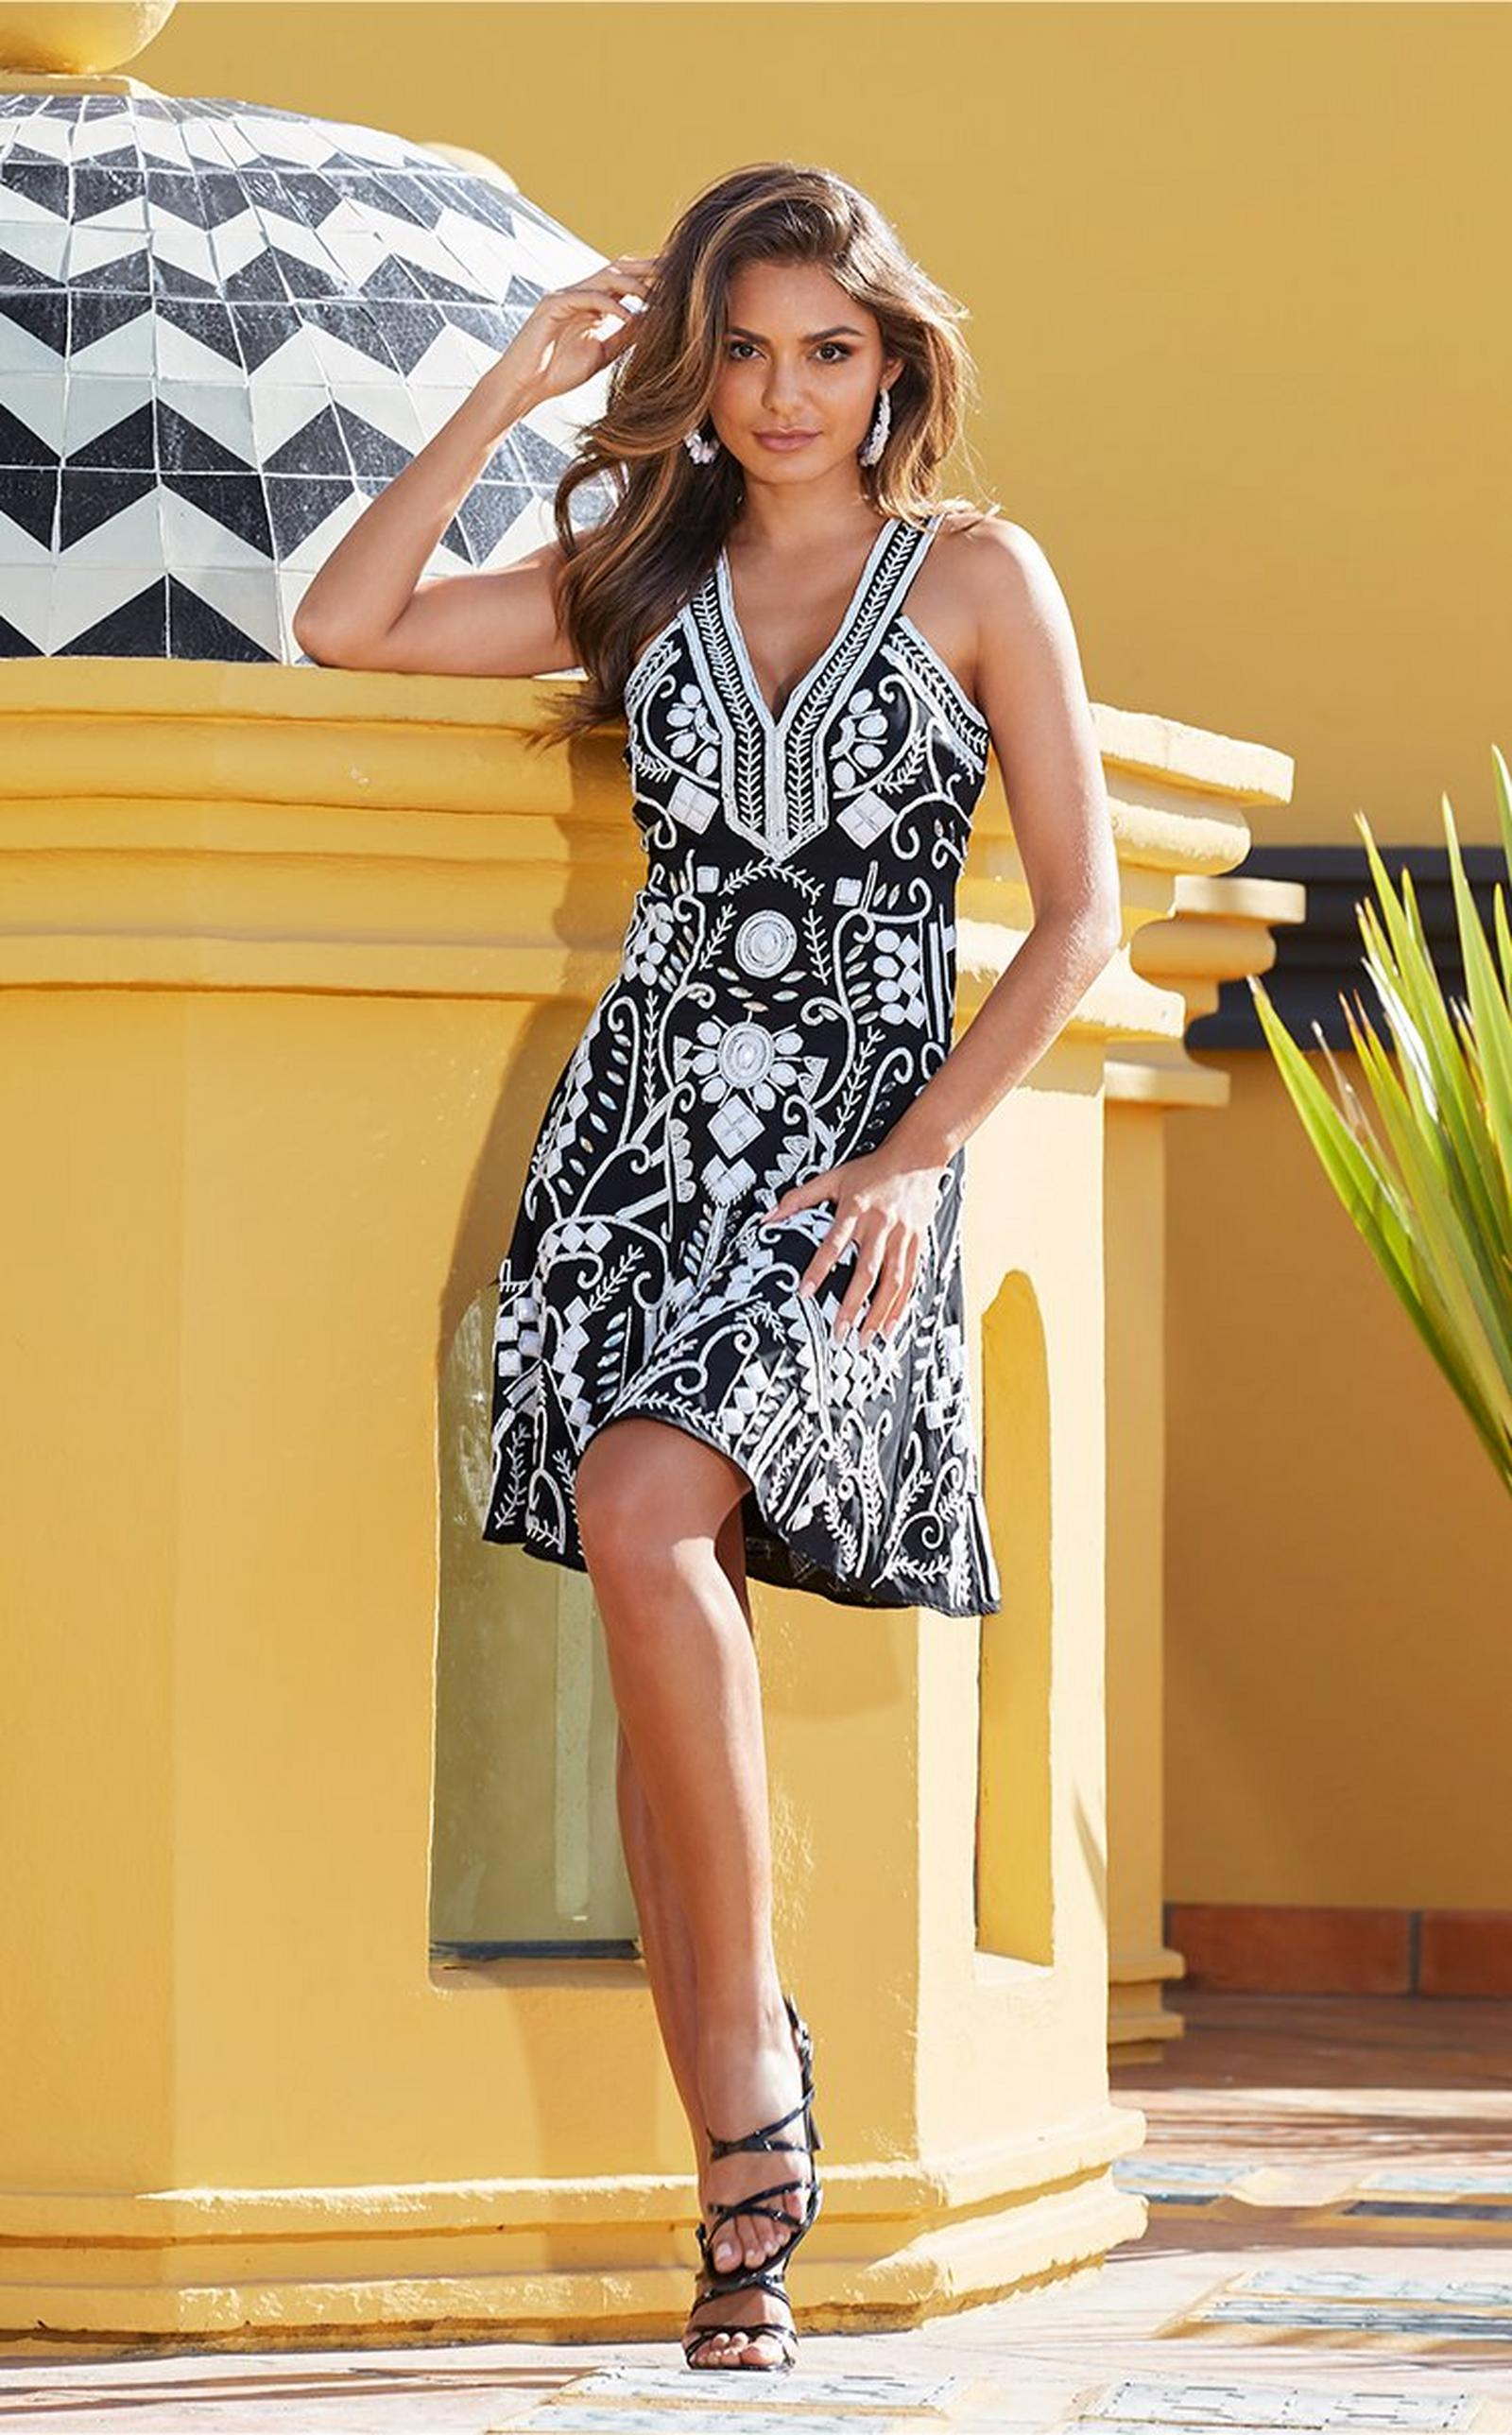 model wearing a black and white embellished dress and strappy black heels.